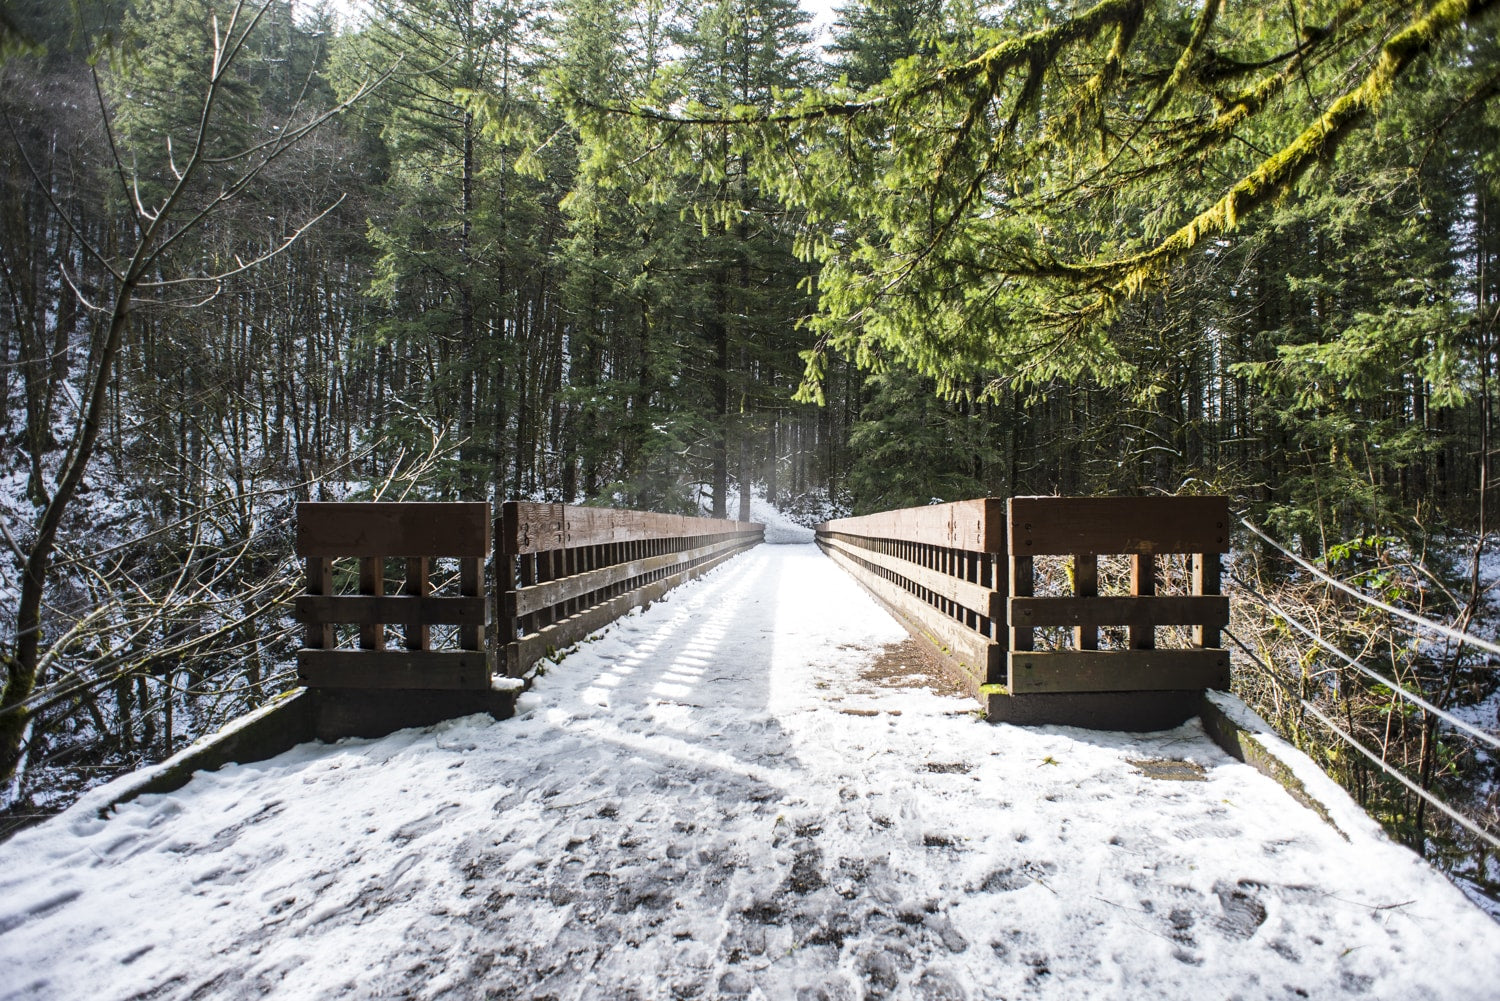 footbridges in the pacific northwest